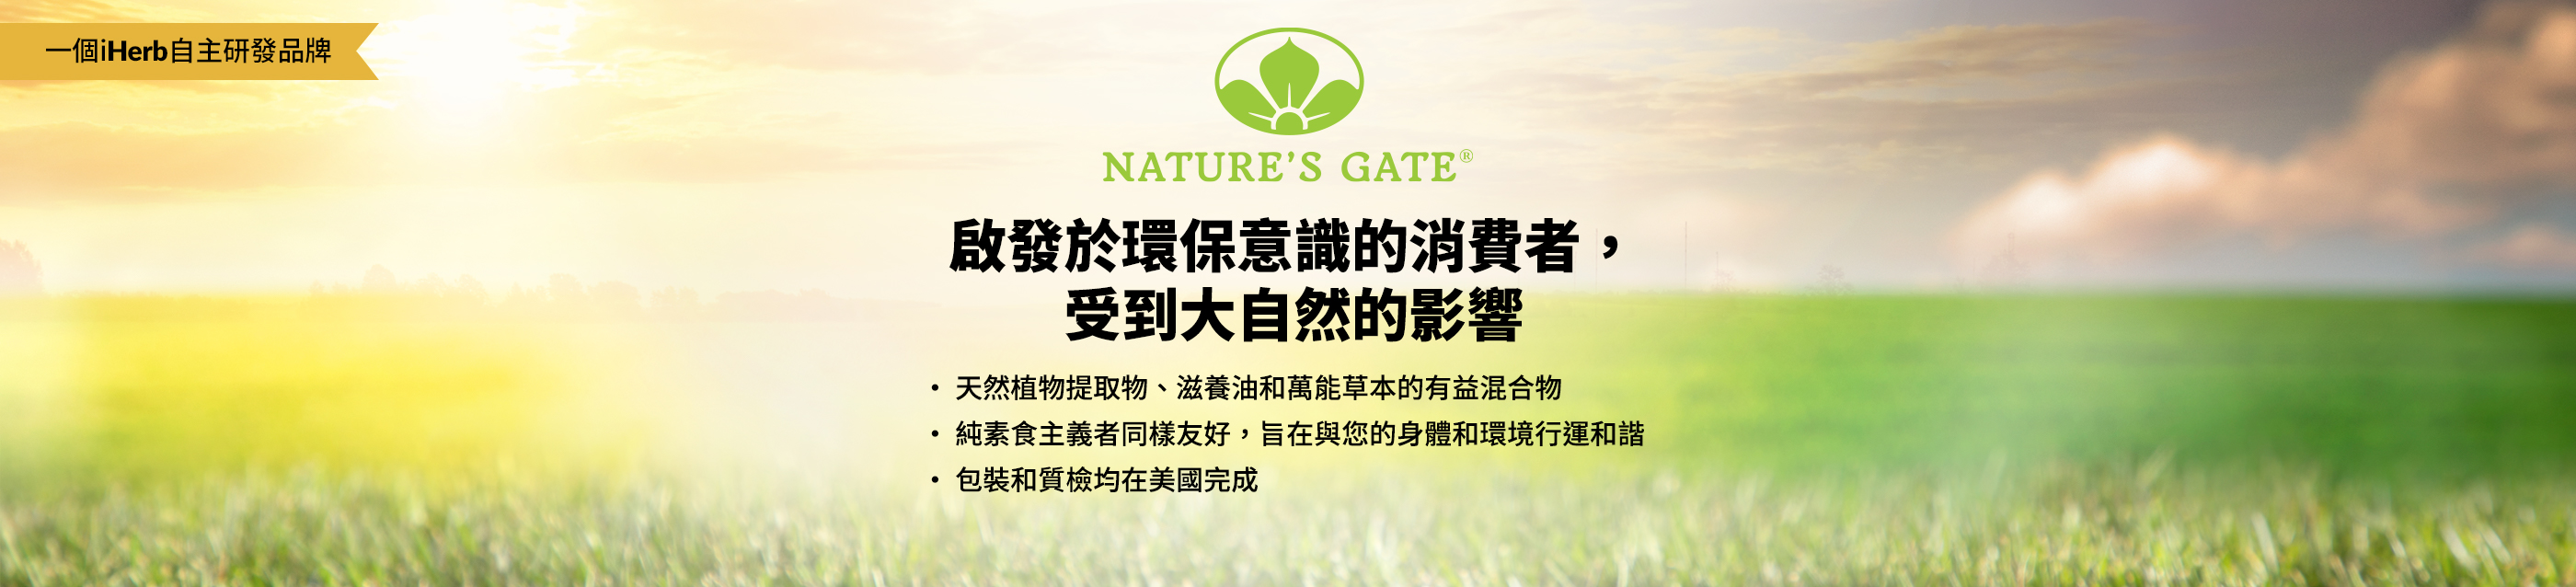 Natures Gate